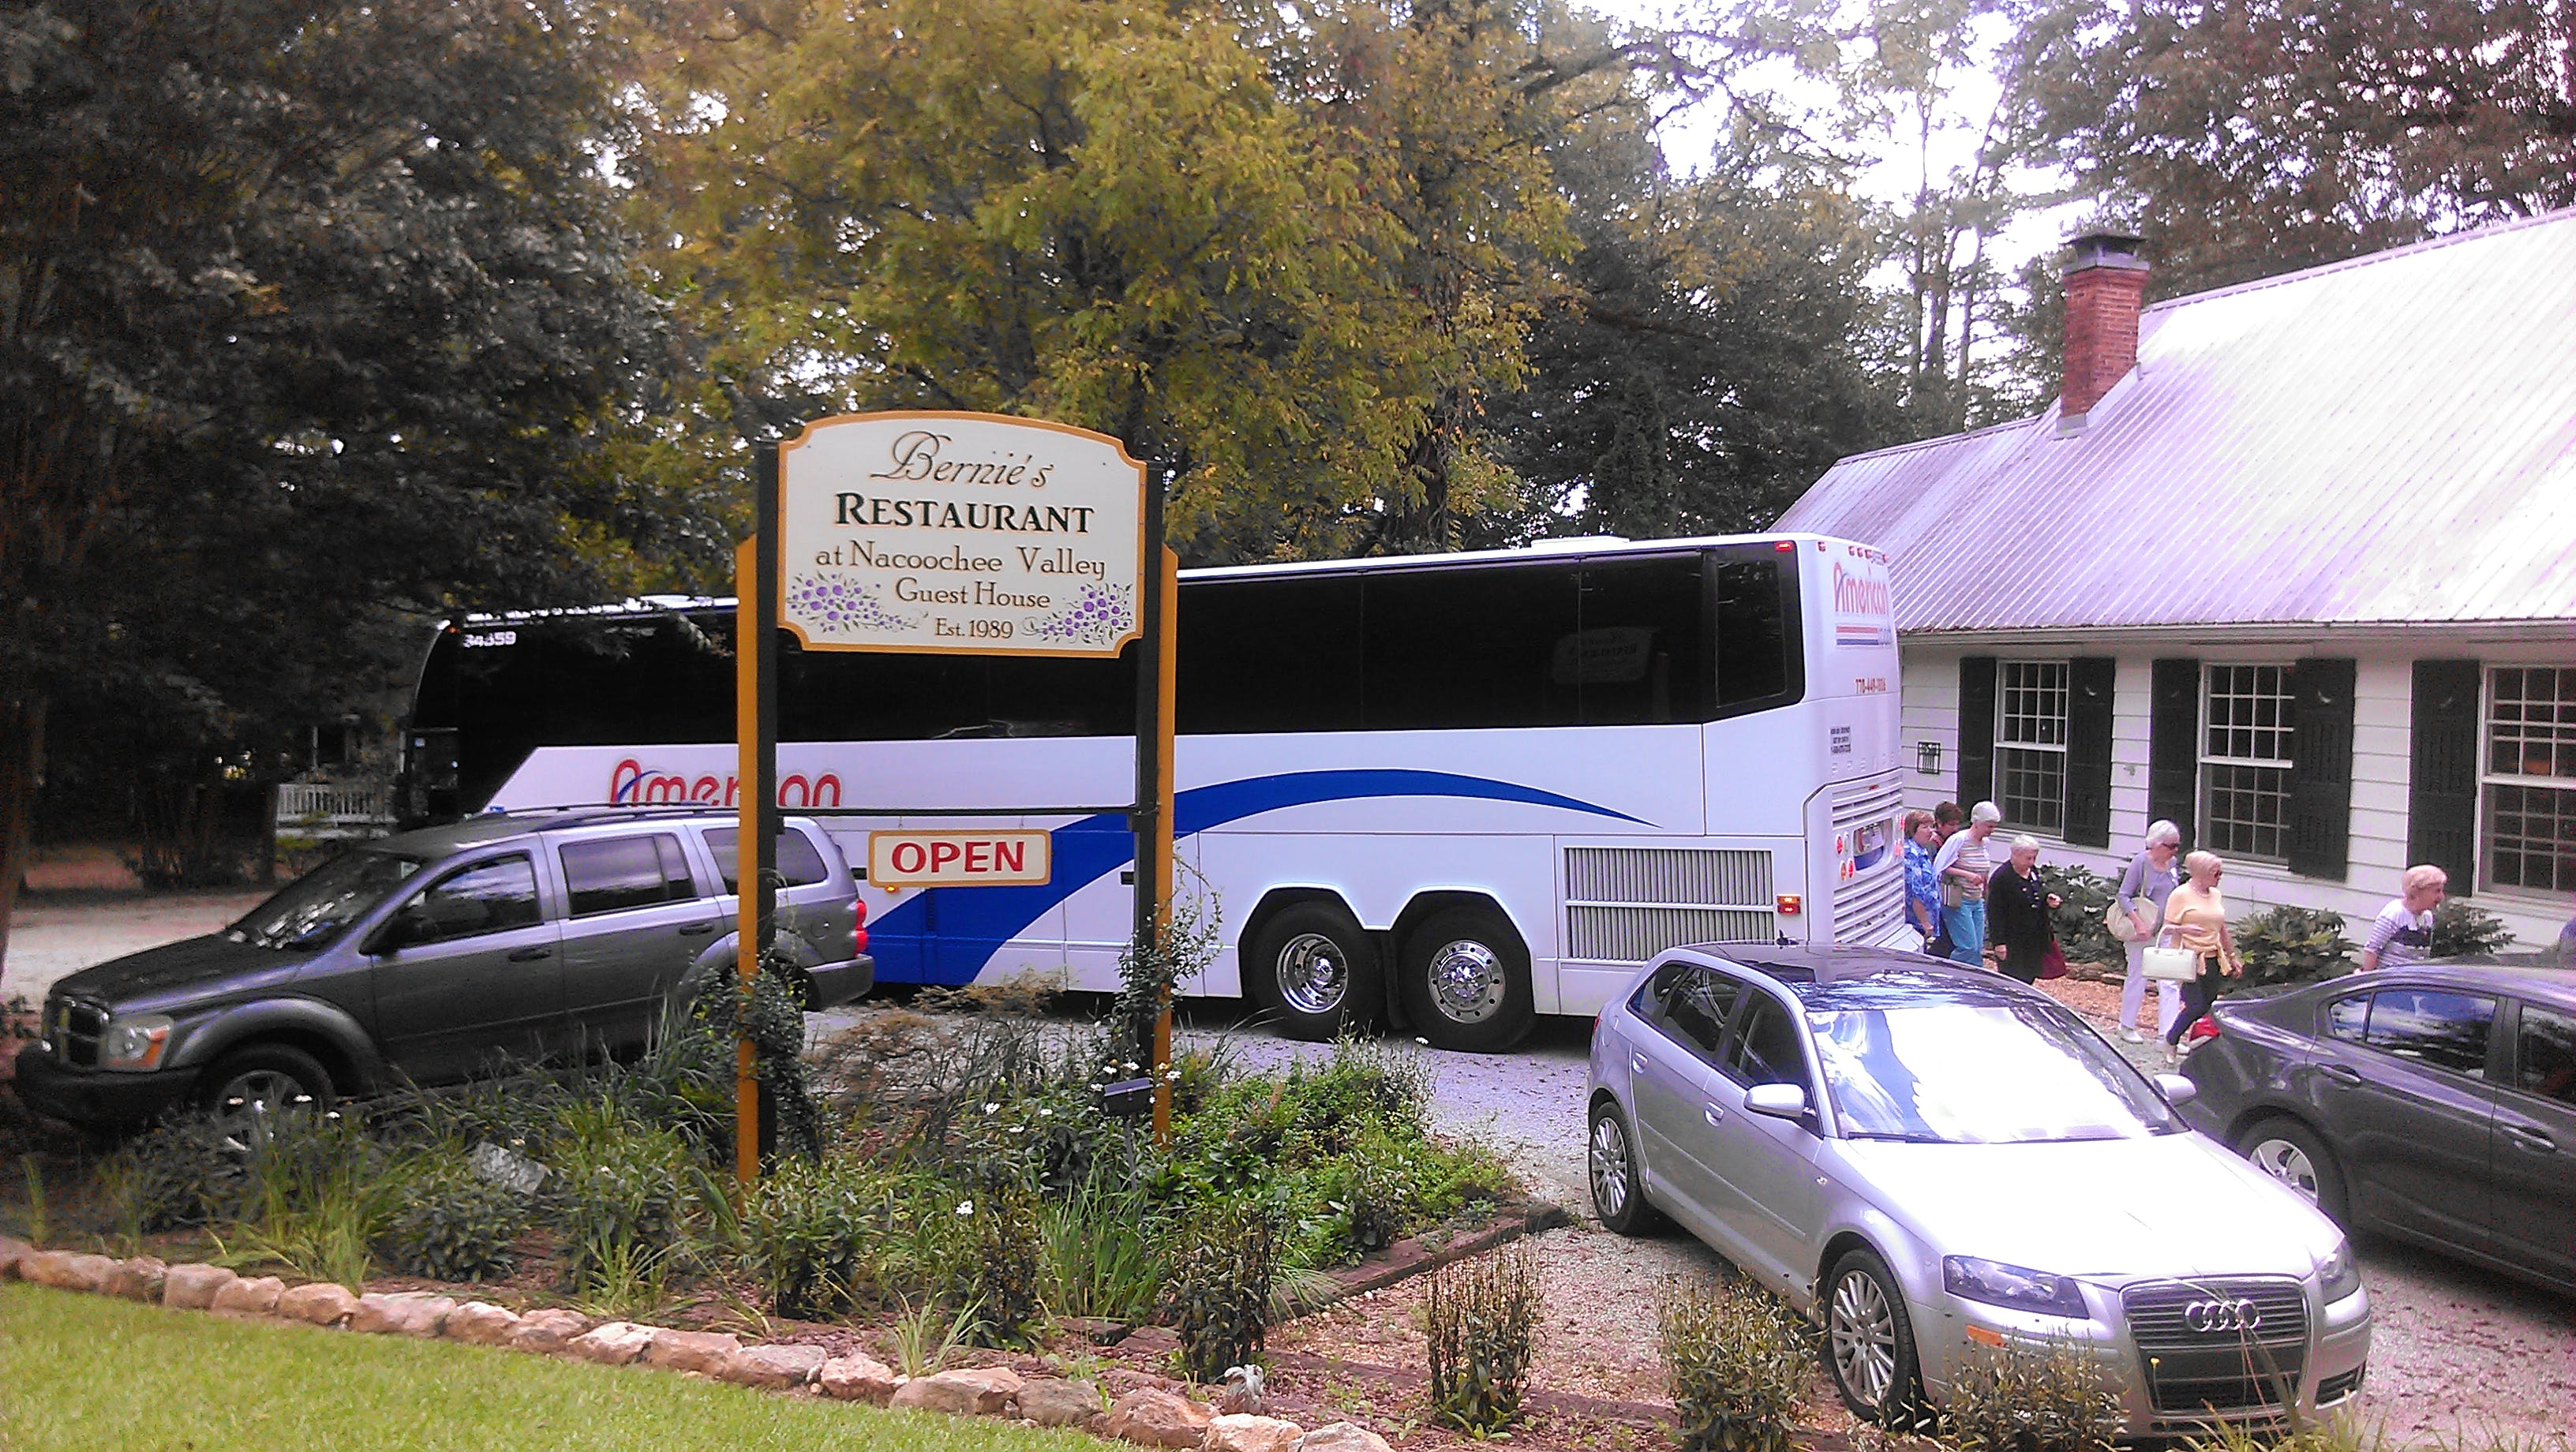 Bus Tours always welcome with advance reservations